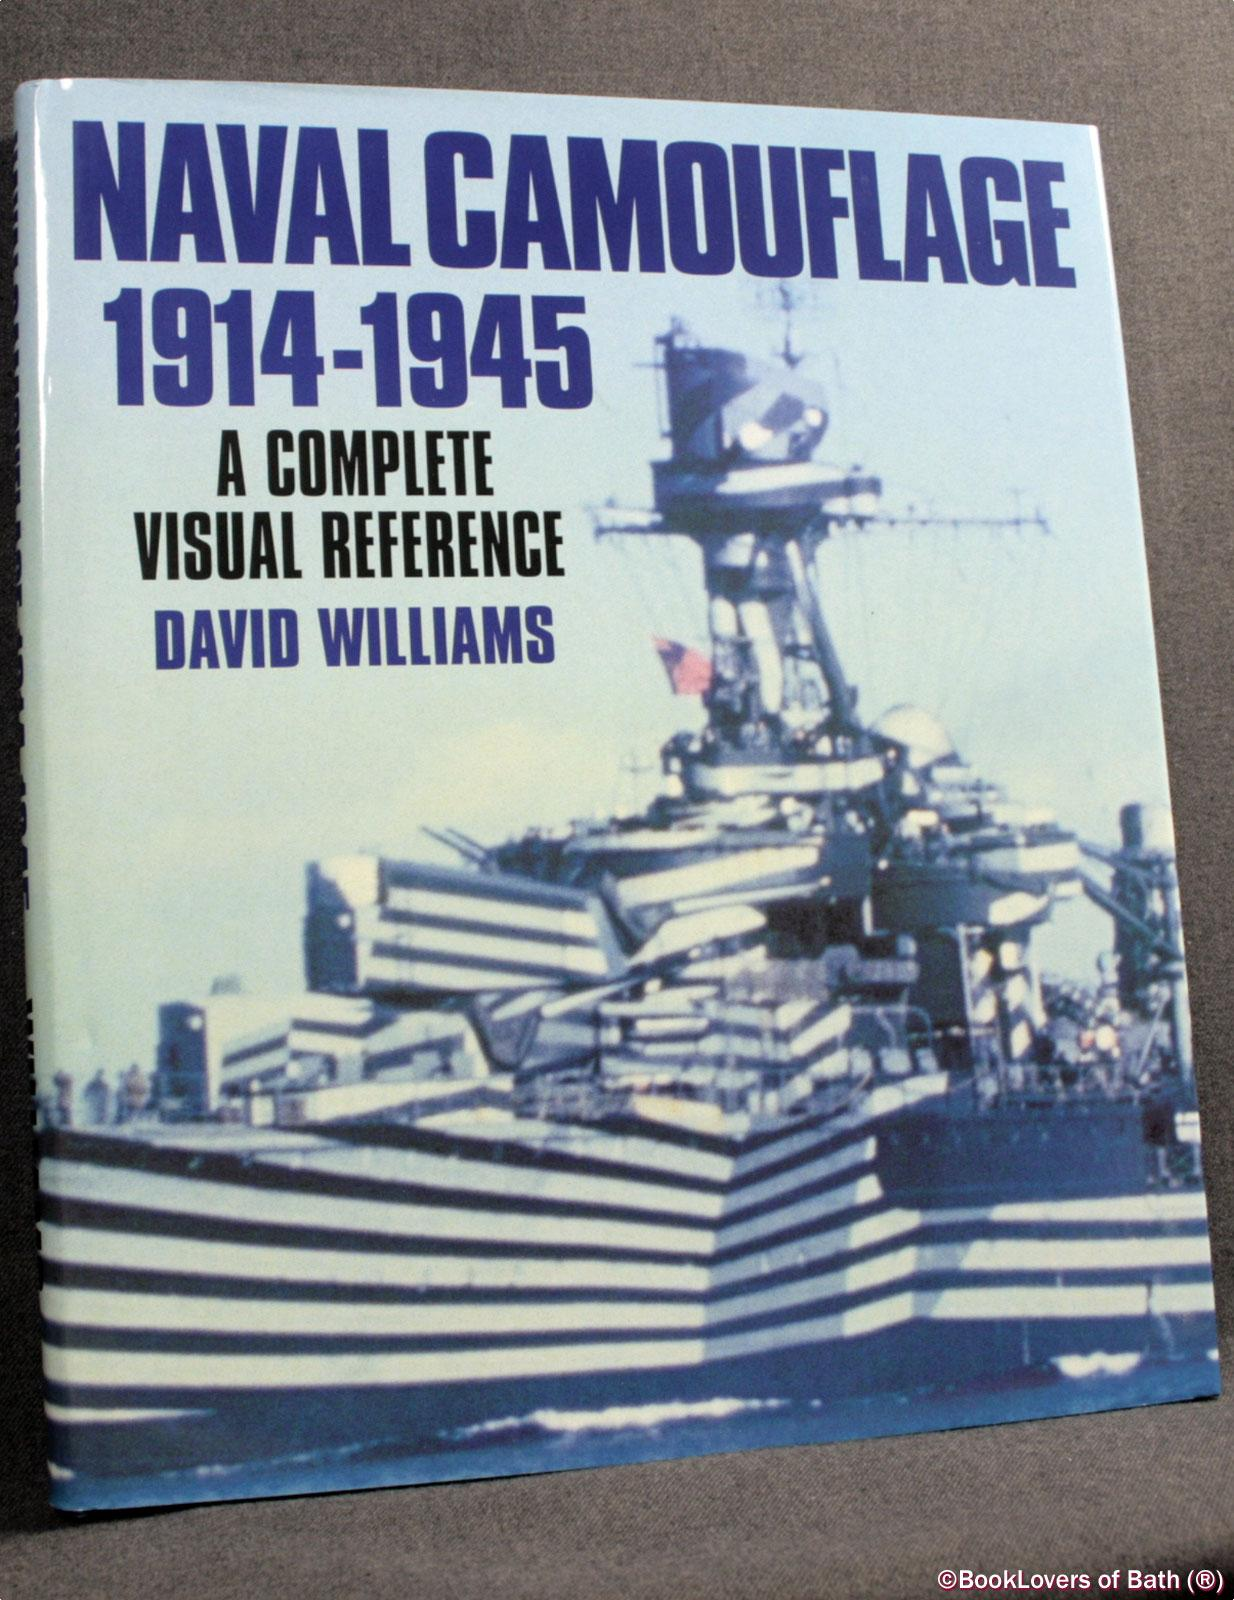 Naval Camouflage 1914-1945: A Complete Visual Reference - David Williams